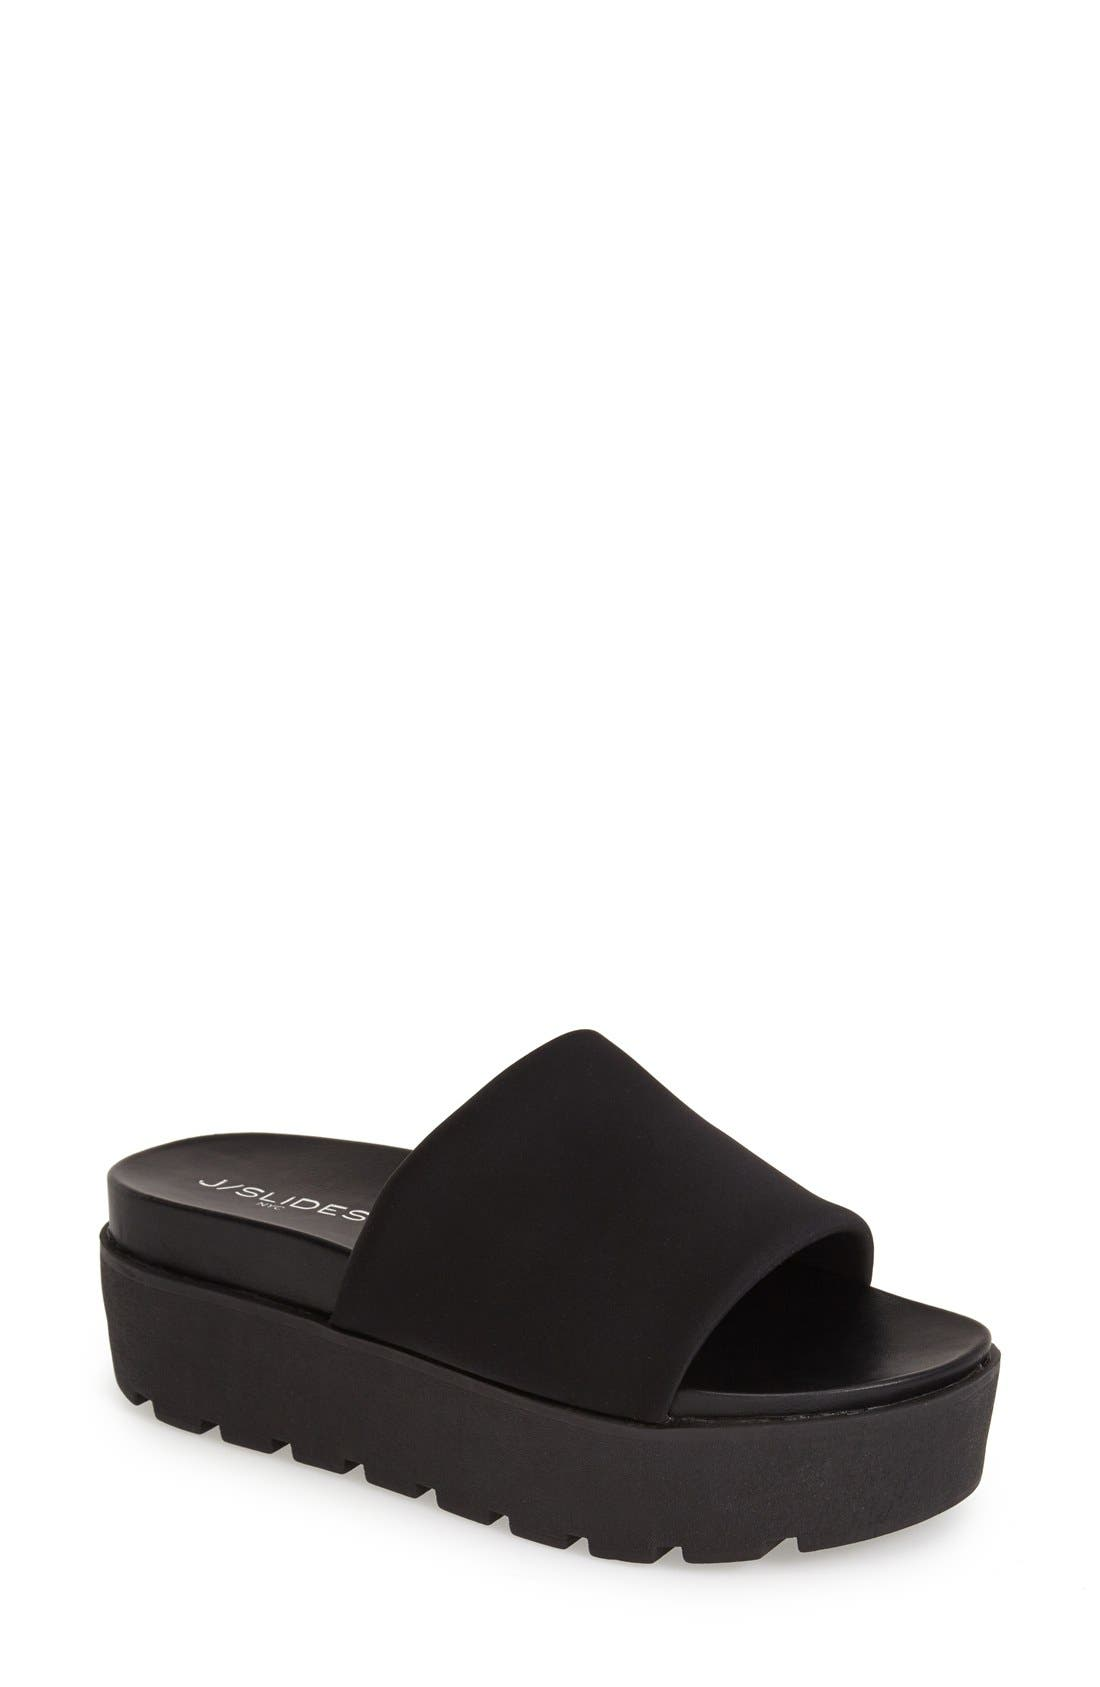 Alternate Image 1 Selected - JSlides 'Telly' Flatform Slide Sandal (Women)